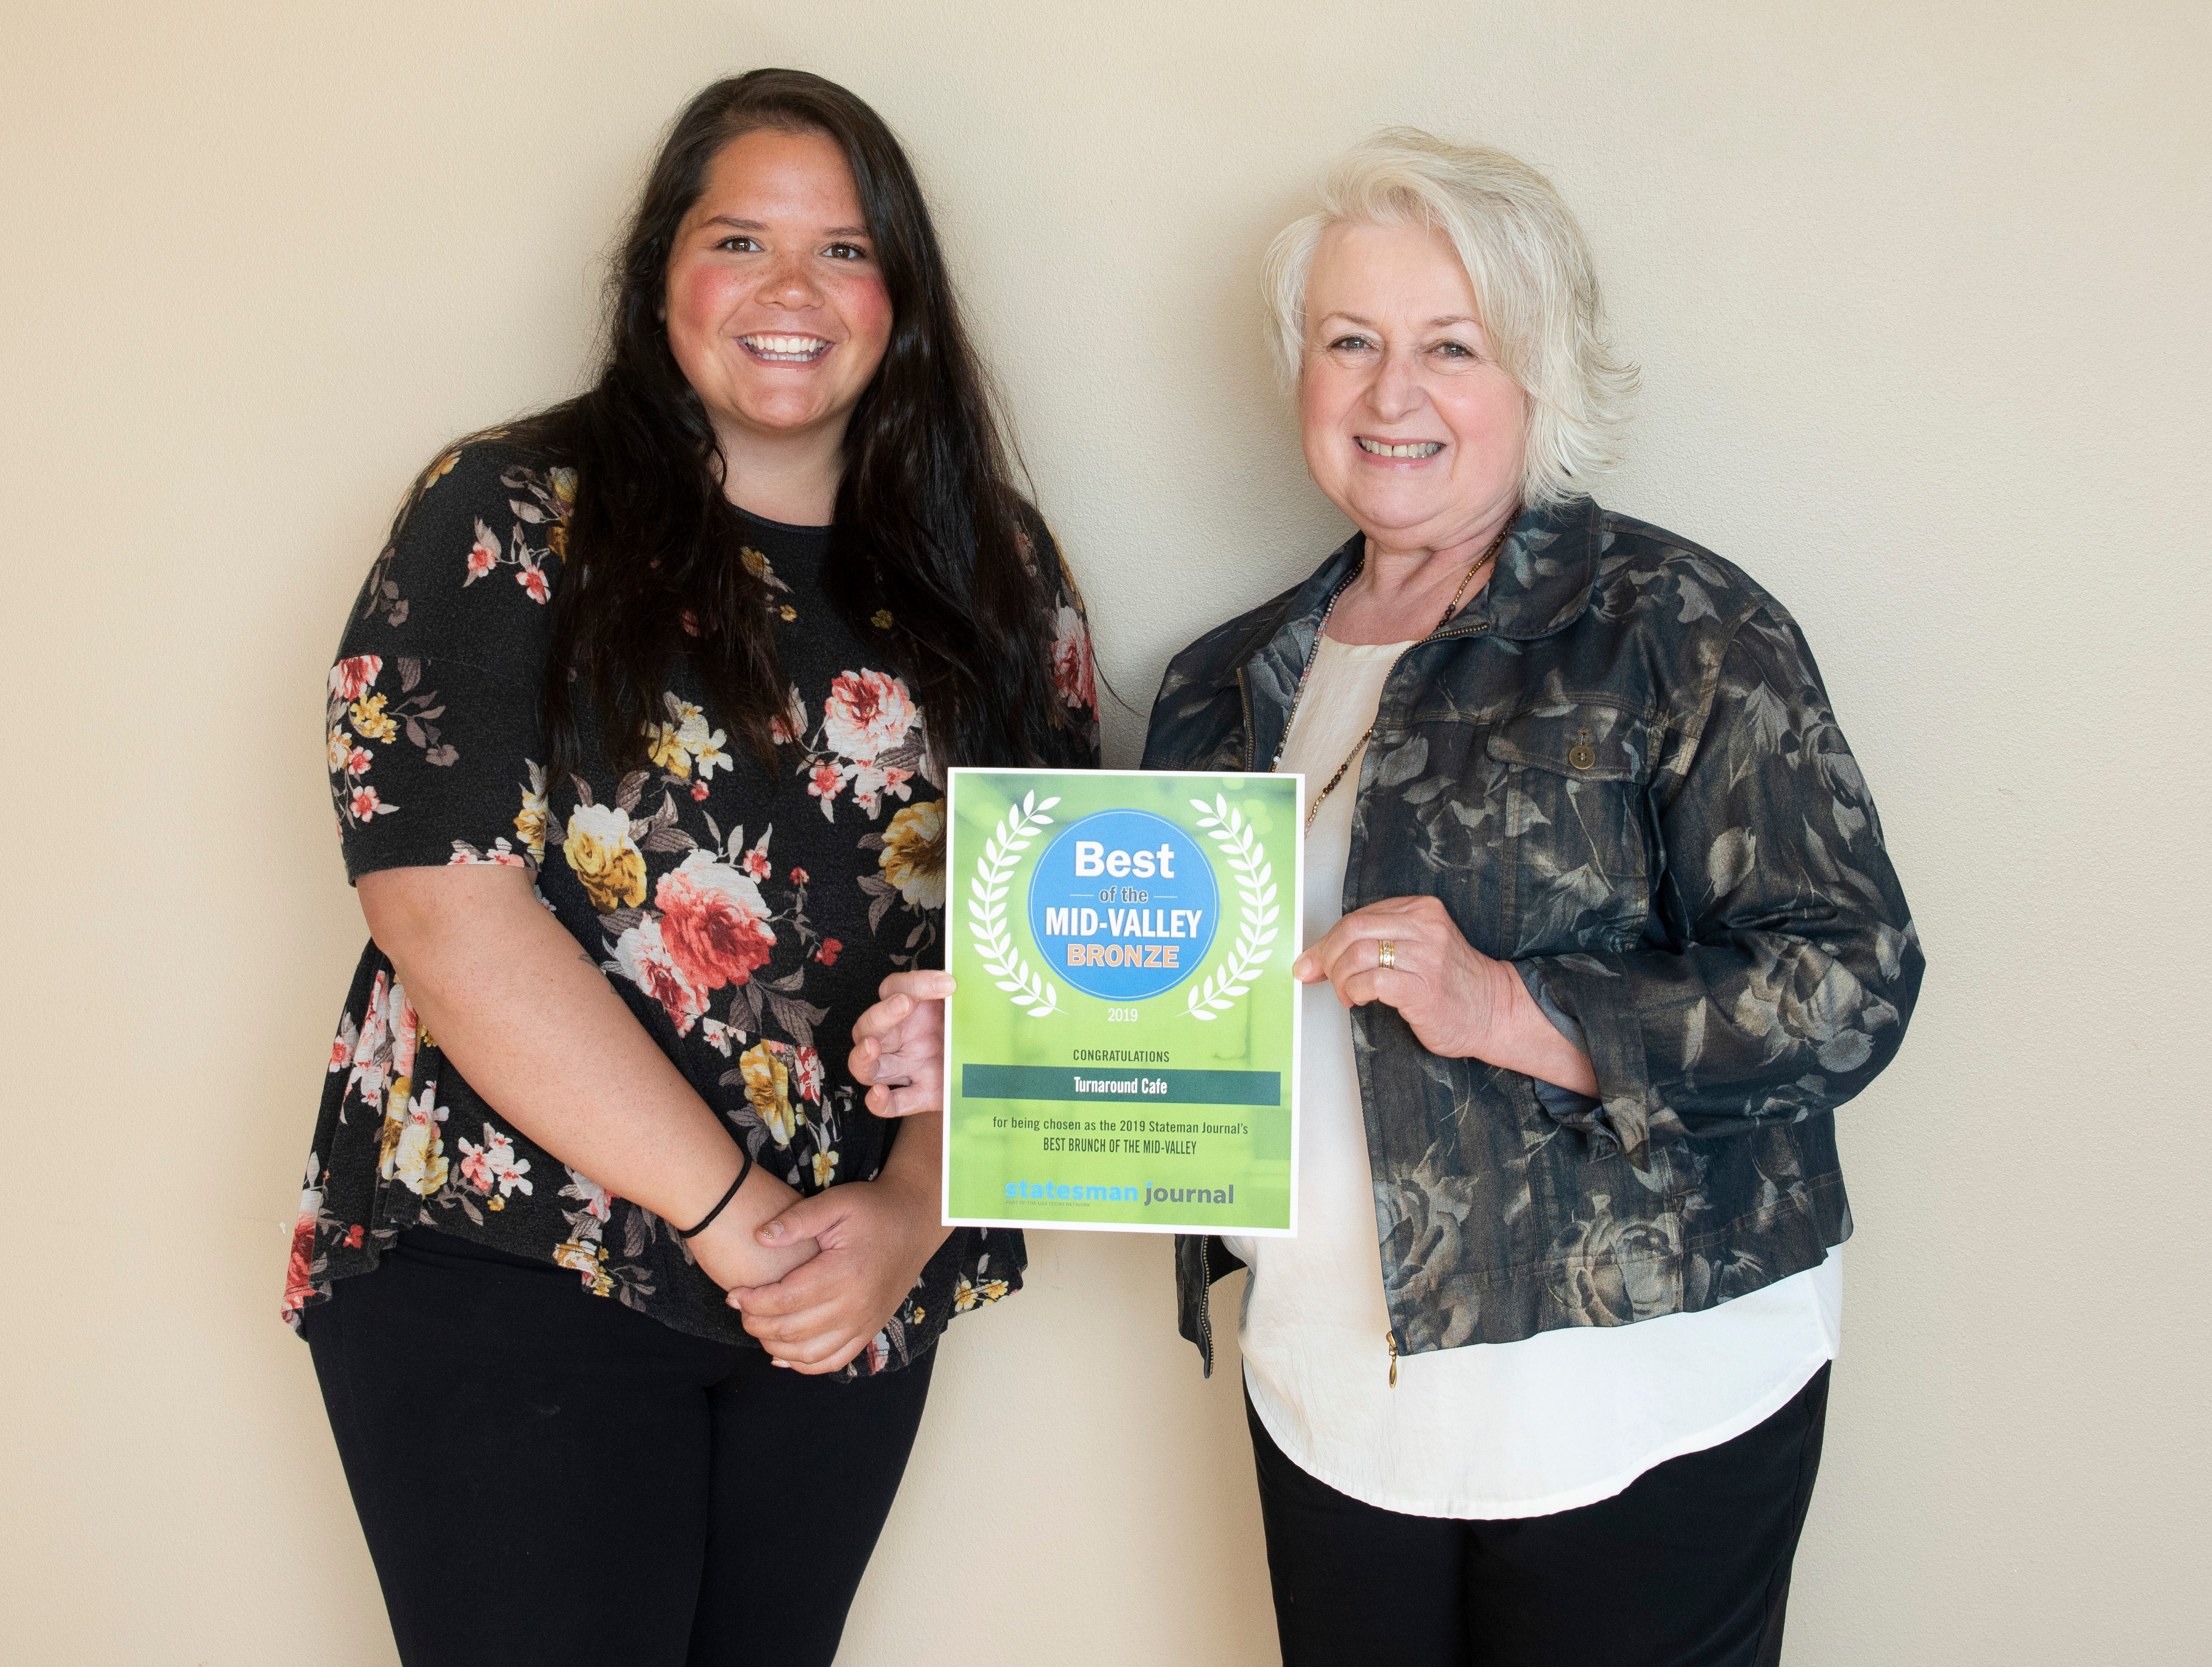 Turnaround Cafe won bronze for Best Brunch in the 2019 Best of the Mid-Valley.